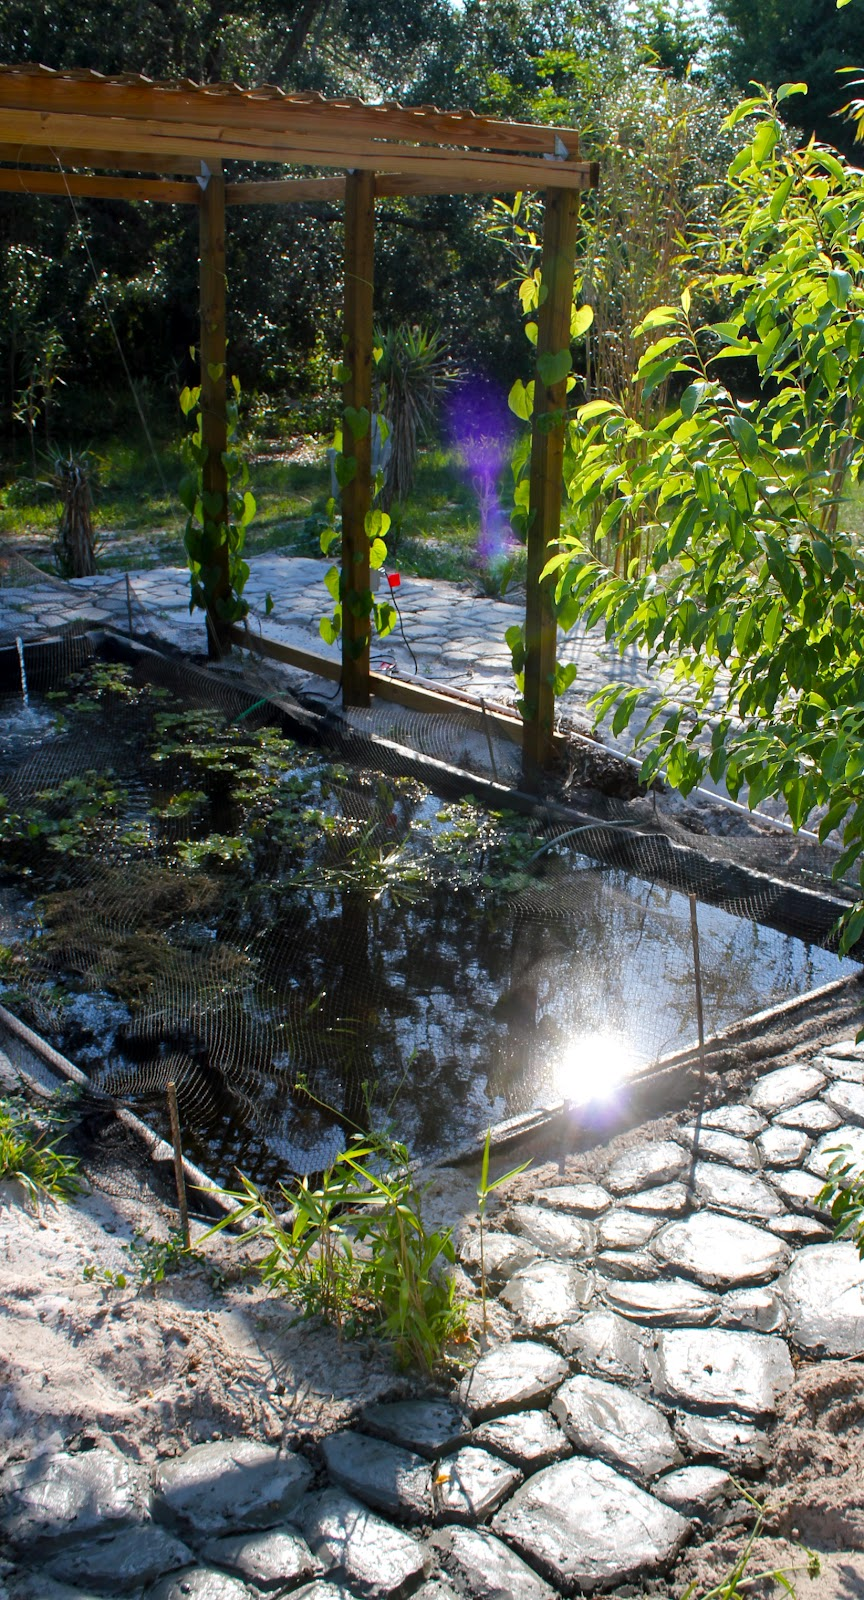 Fiercely hot florida phillip 39 s natural world for Koi pool construction